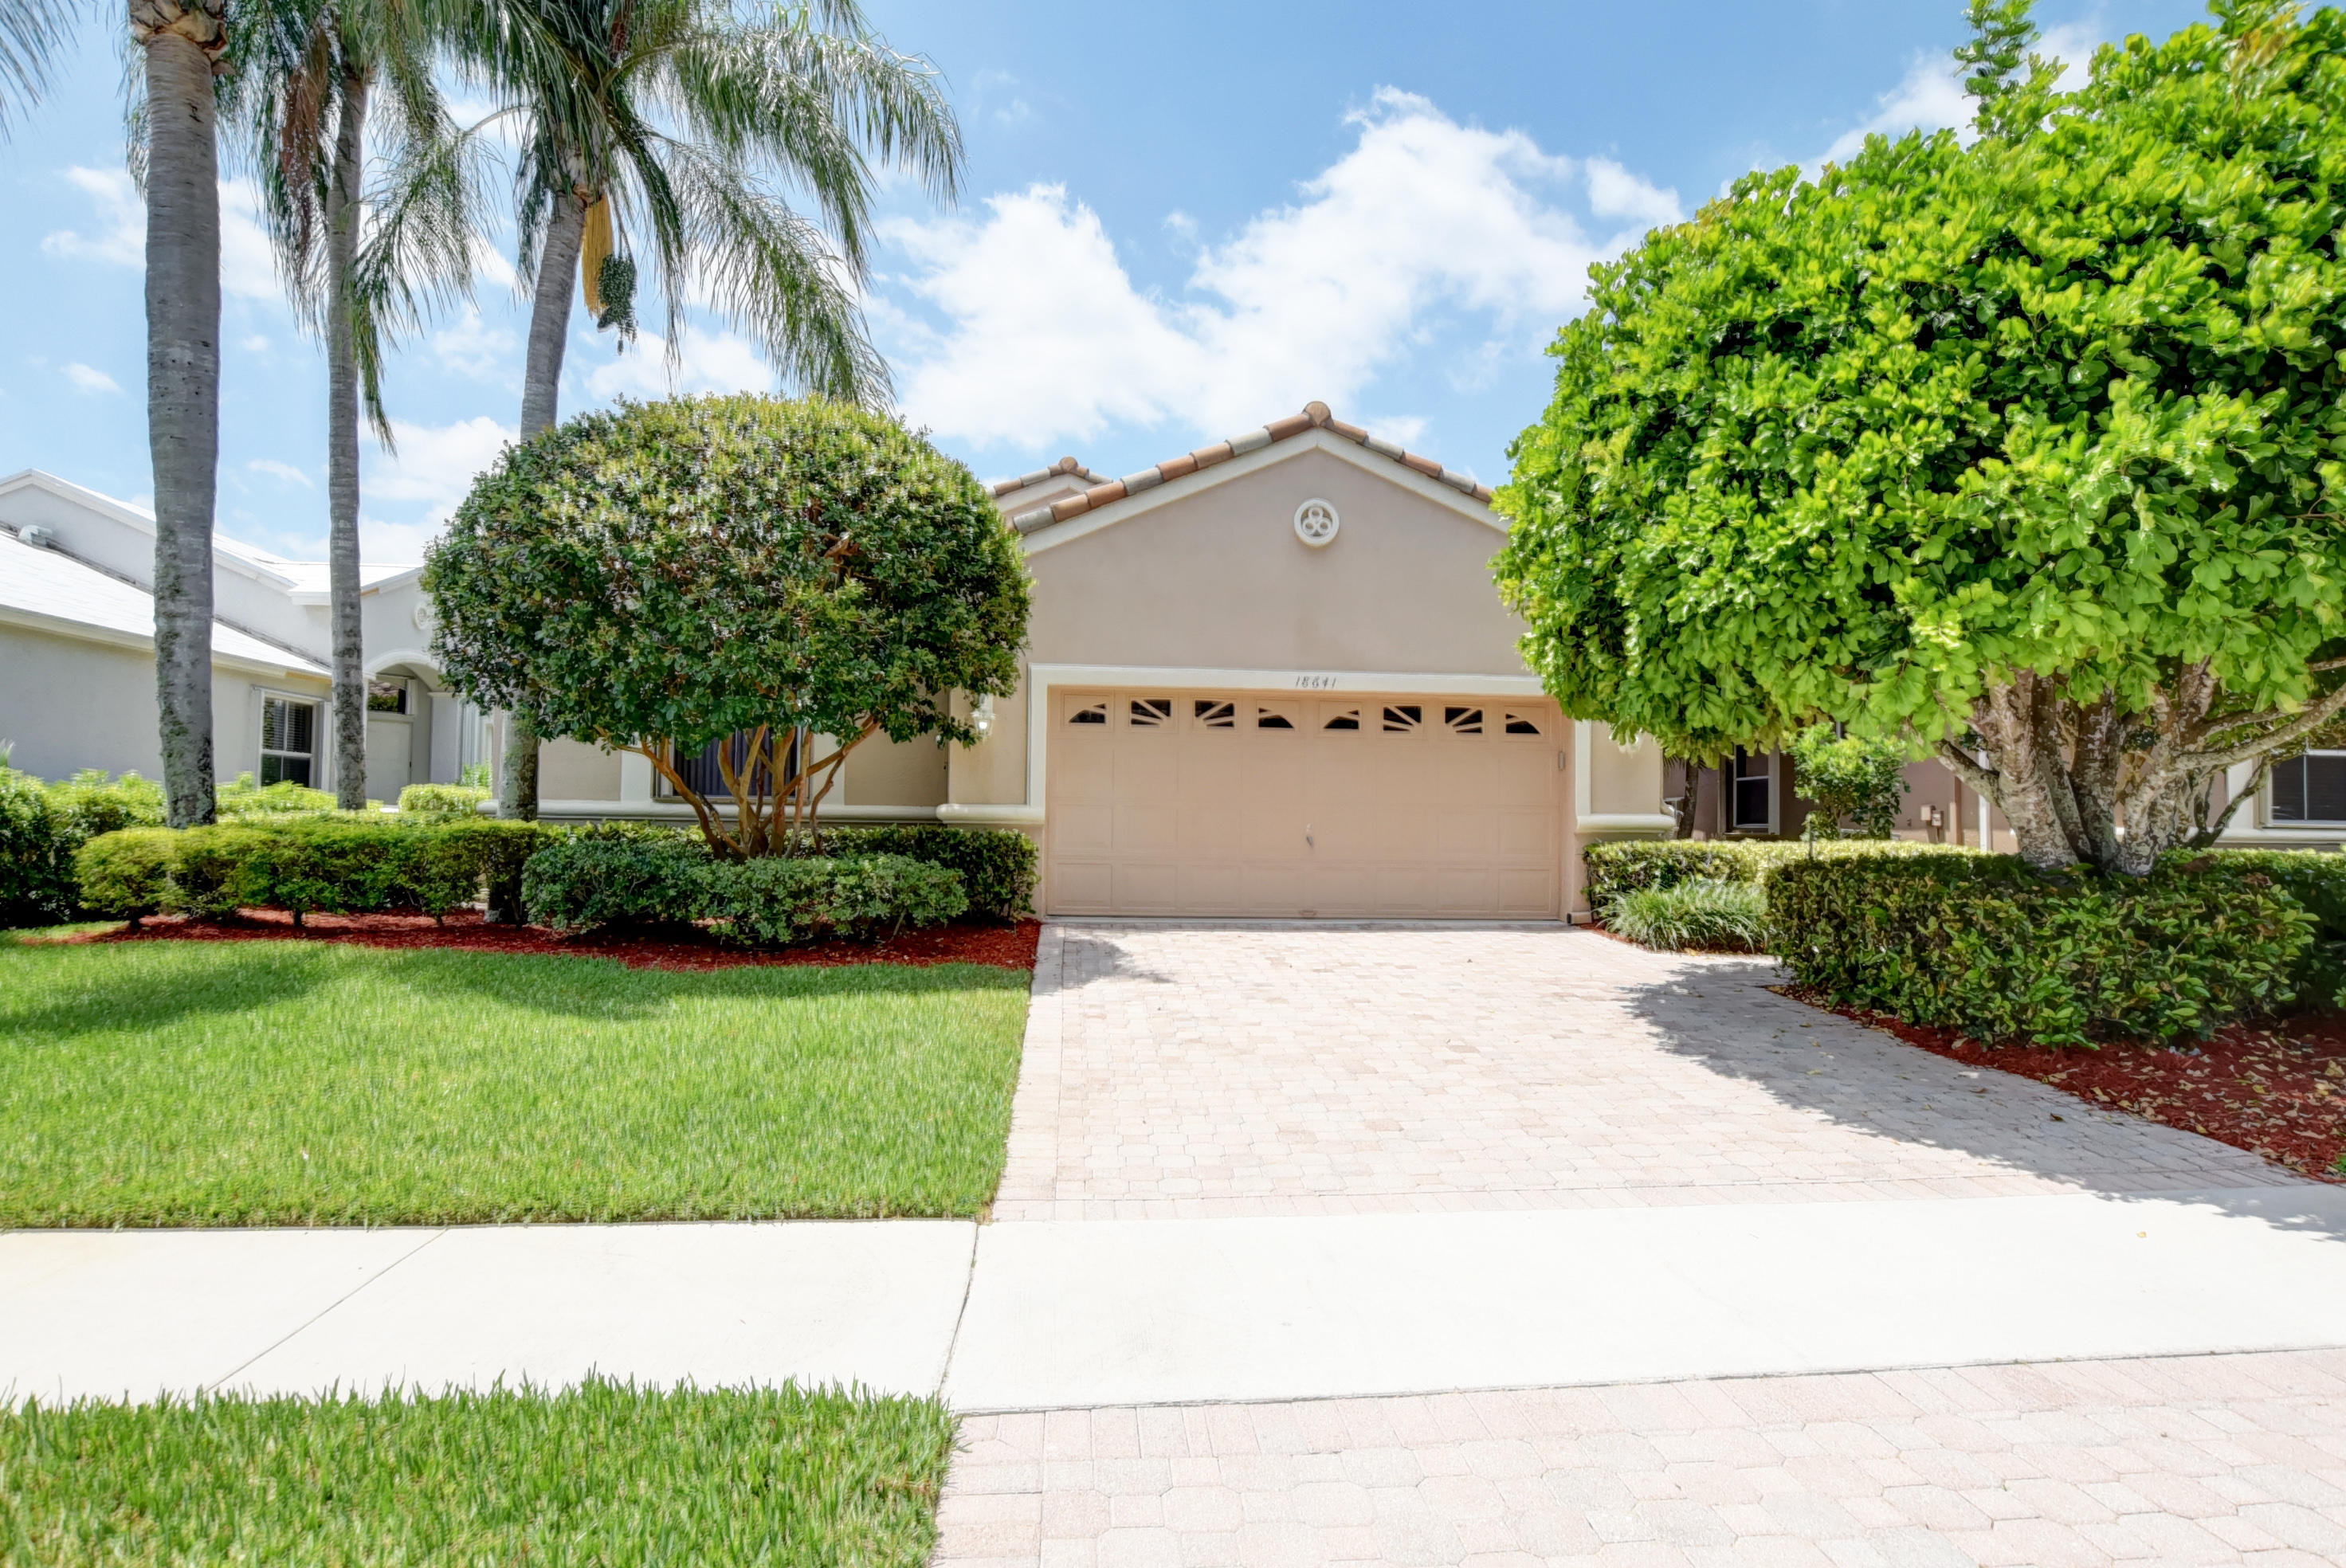 Photo of 18641 Sea Turtle Lane, Boca Raton, FL 33498